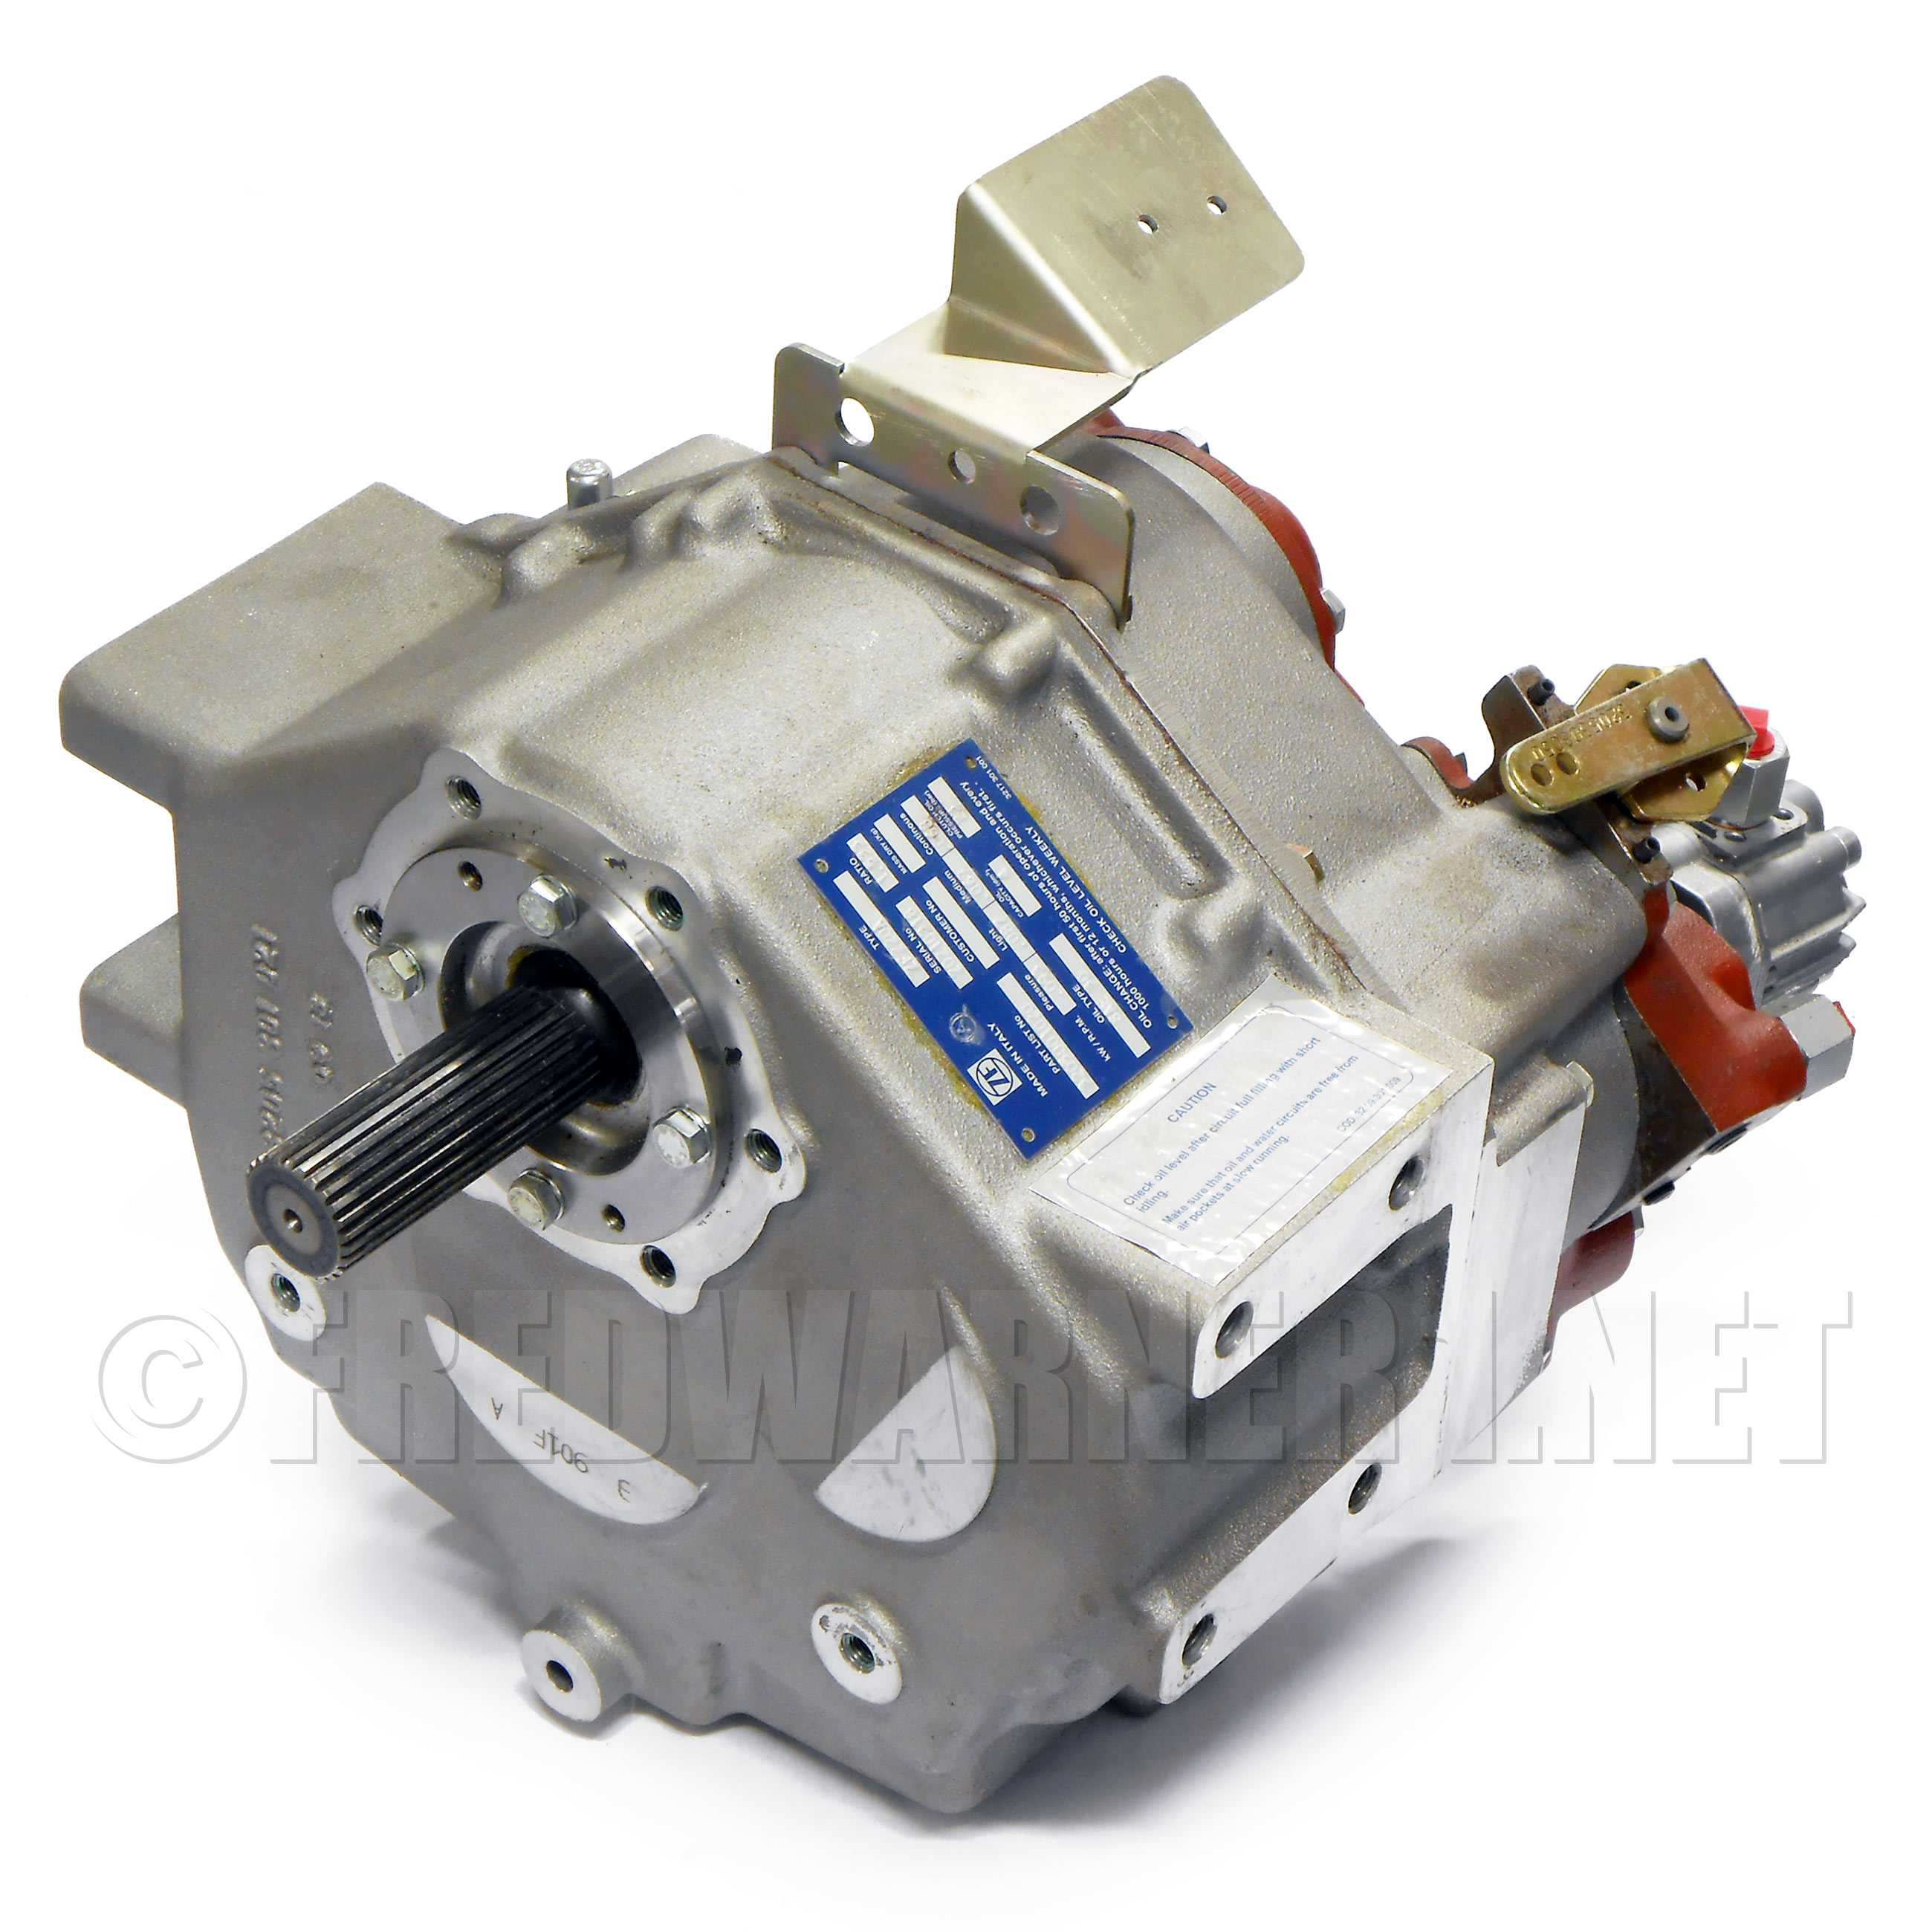 ZF 220A 2.5:1 Marine Boat Transmission Gearbox IRM 220A-1 3205001023